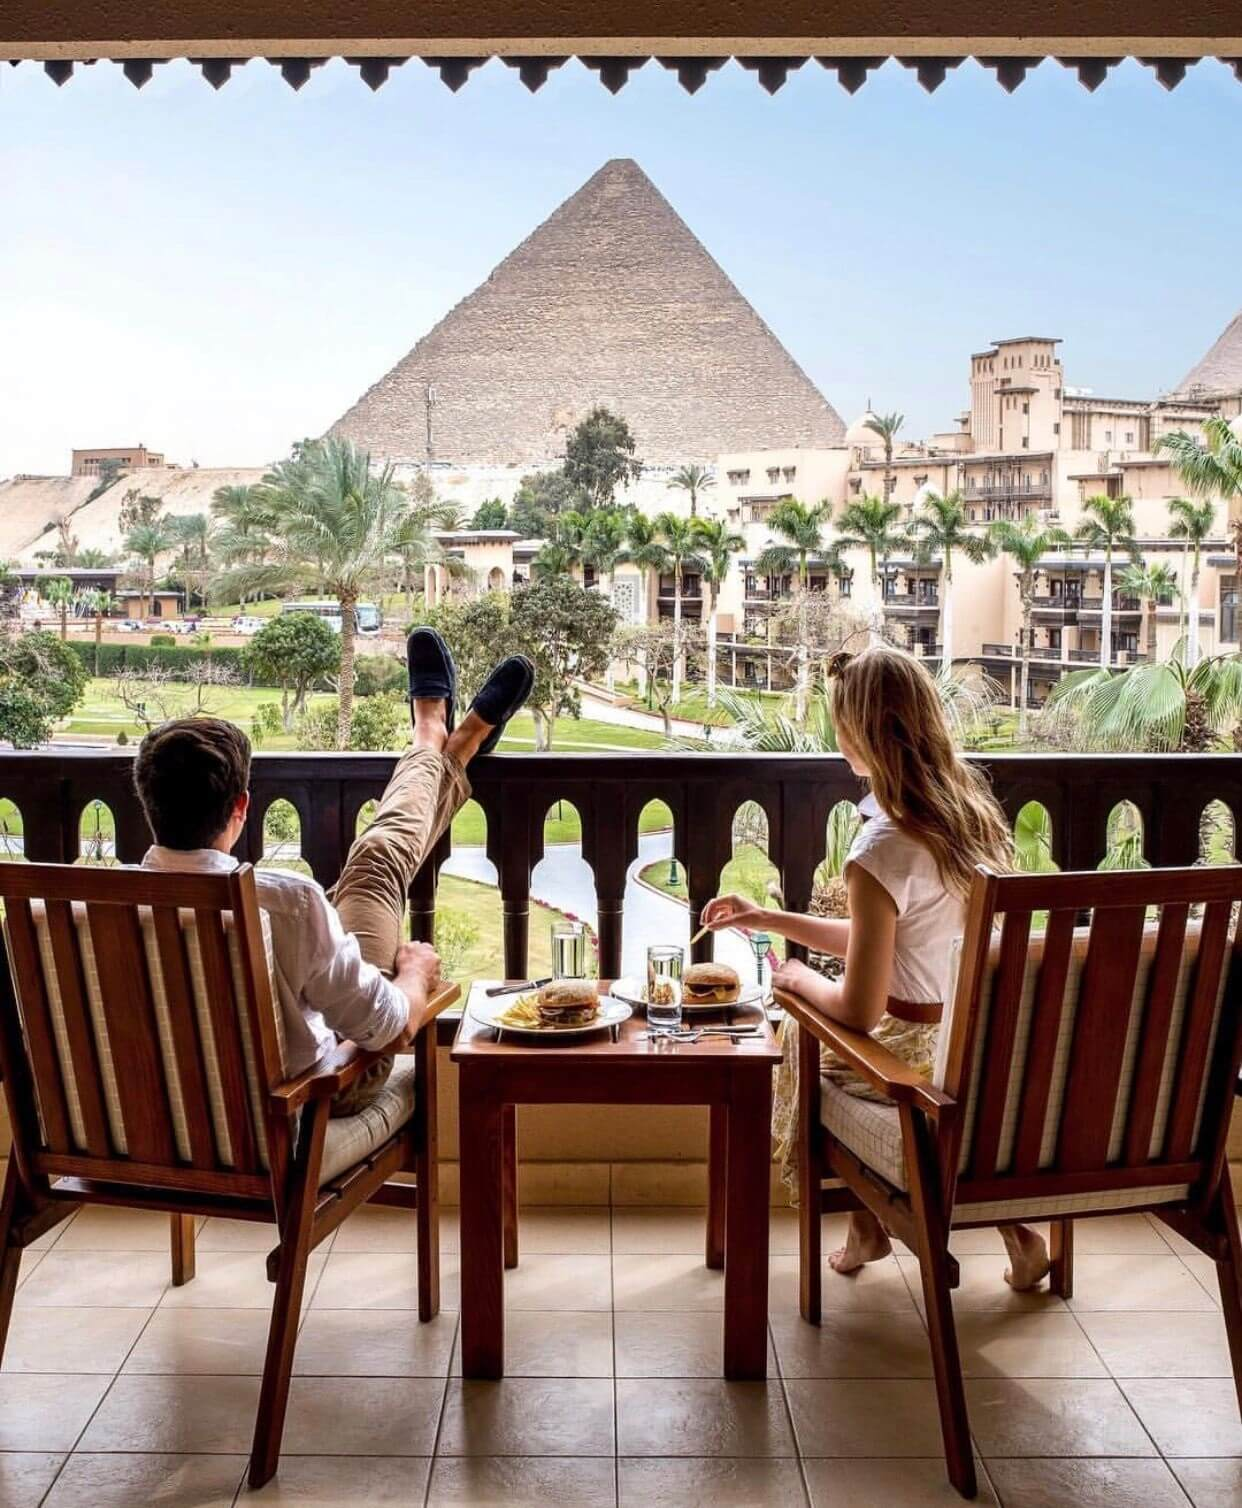 MENA hotels' profit-losing streak continues for 12th consecutive month